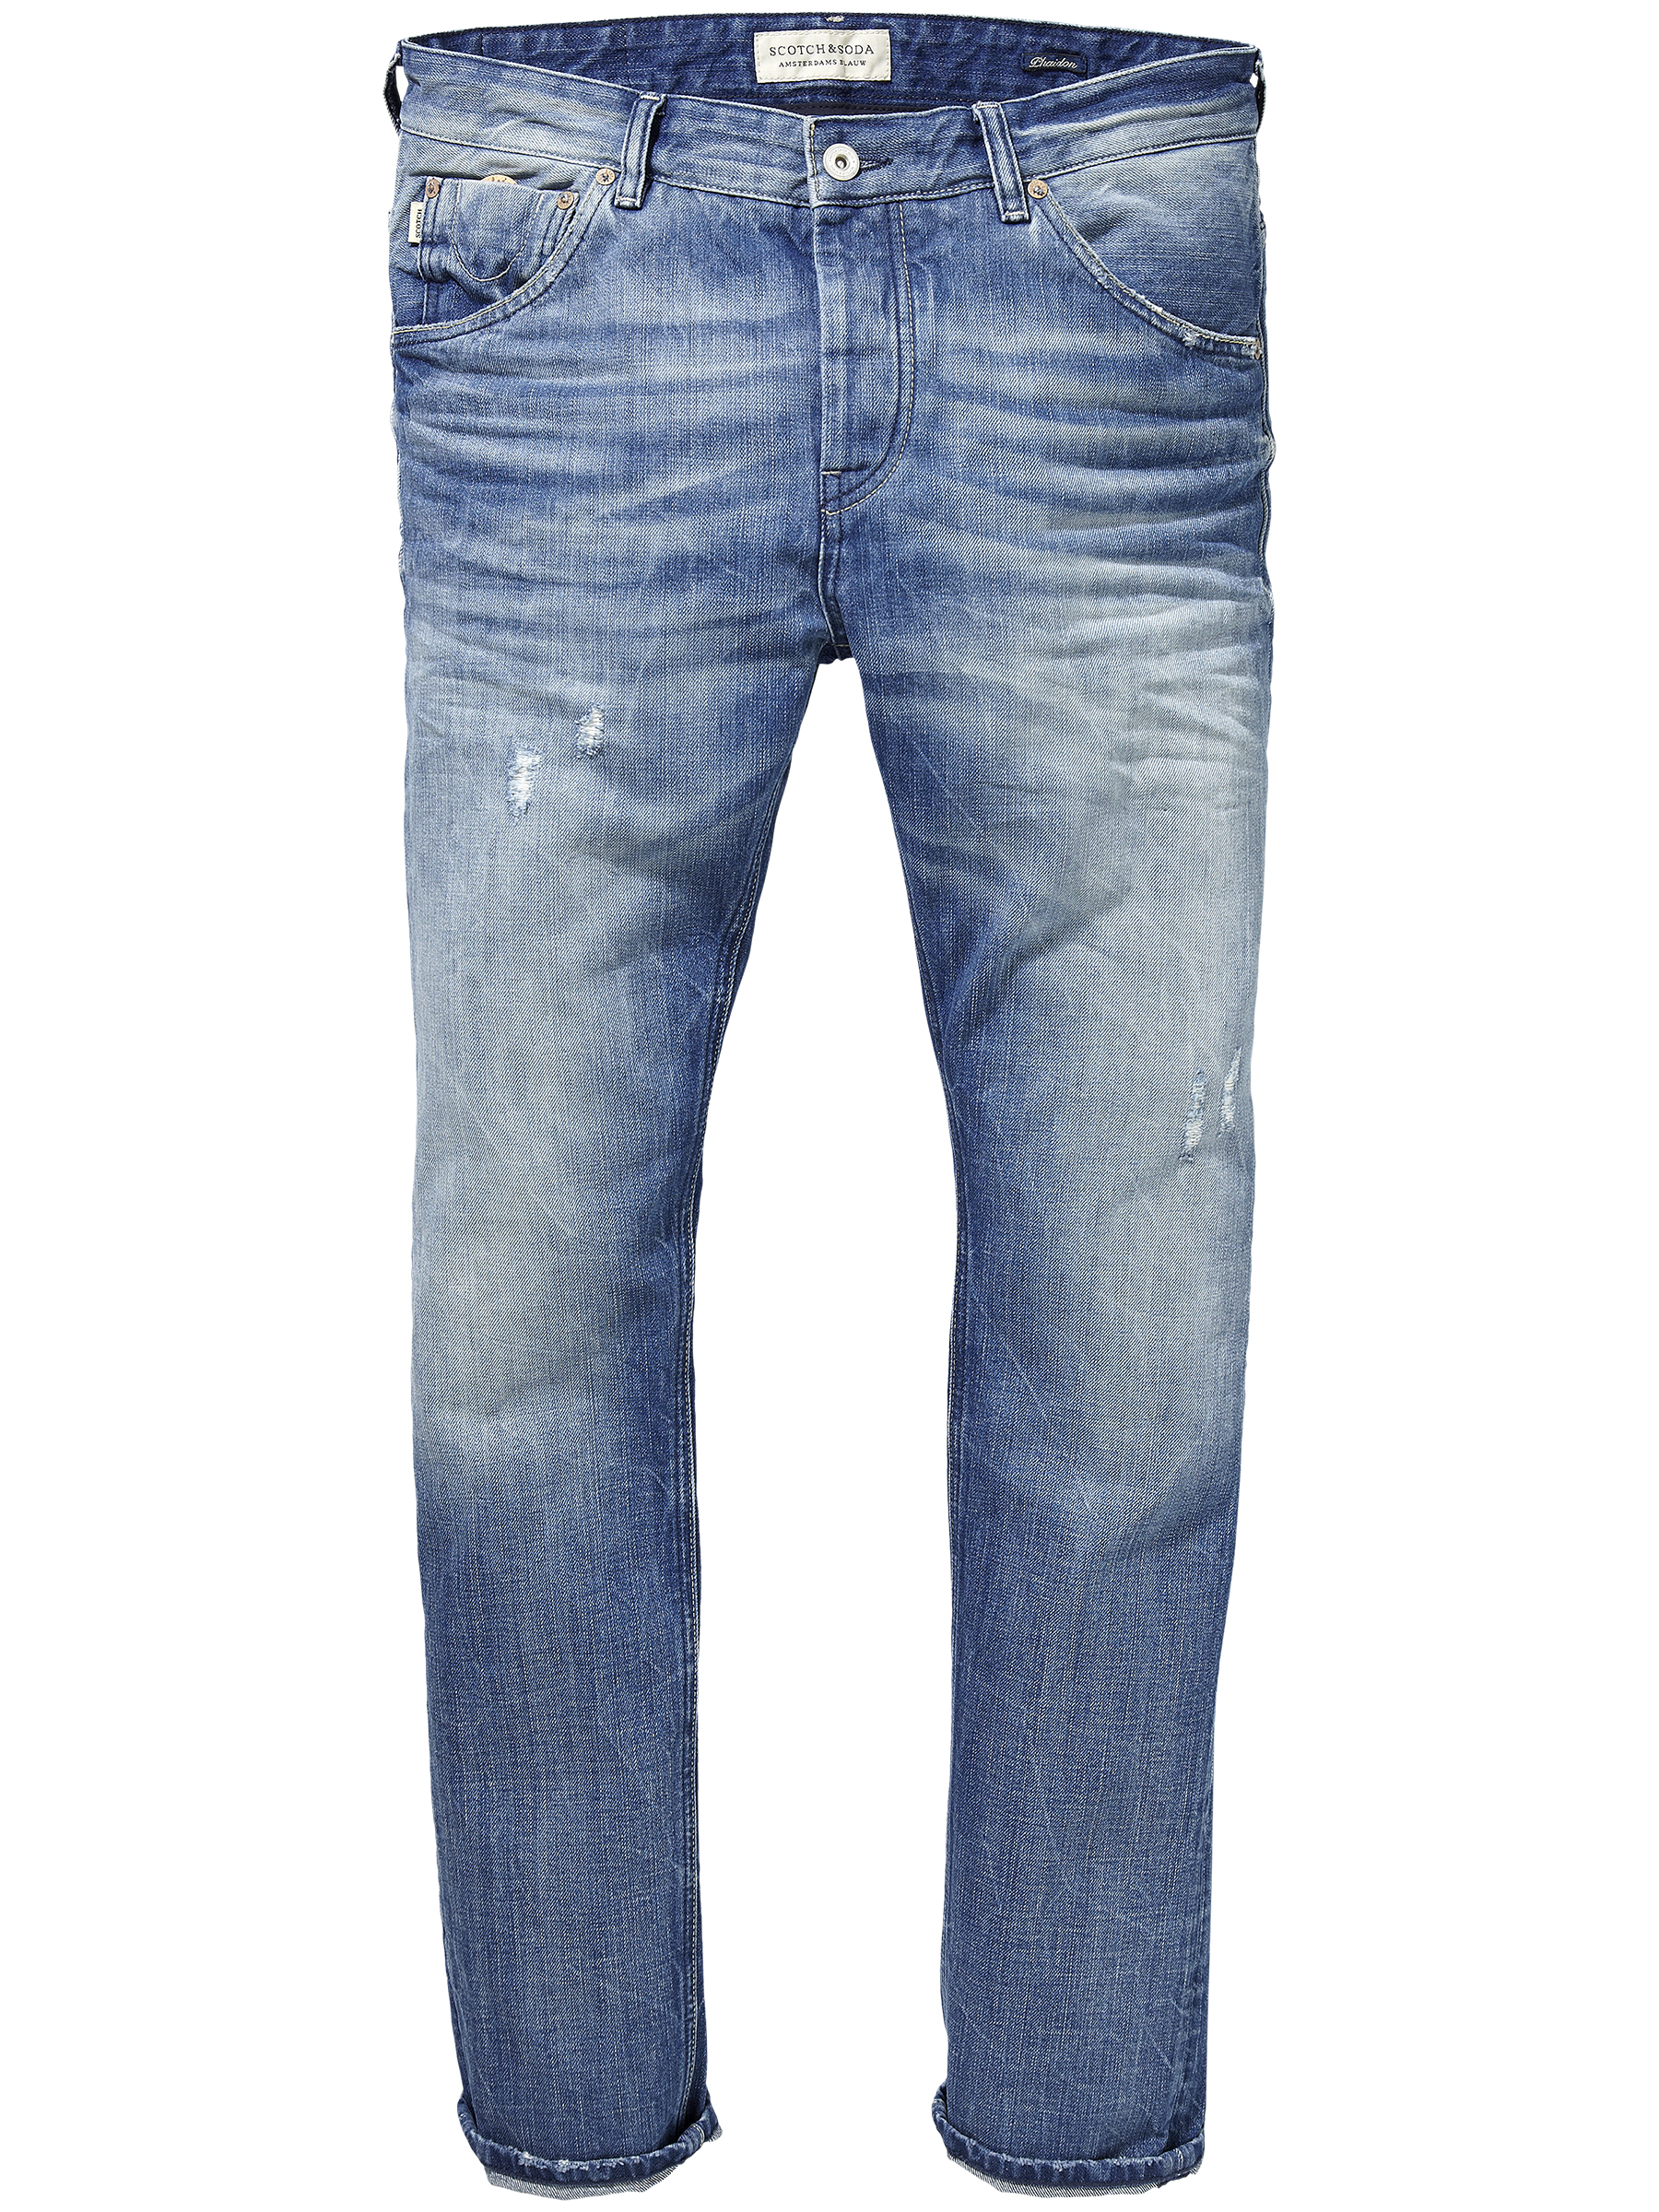 Zoomers, Scotch Soda heren jeans